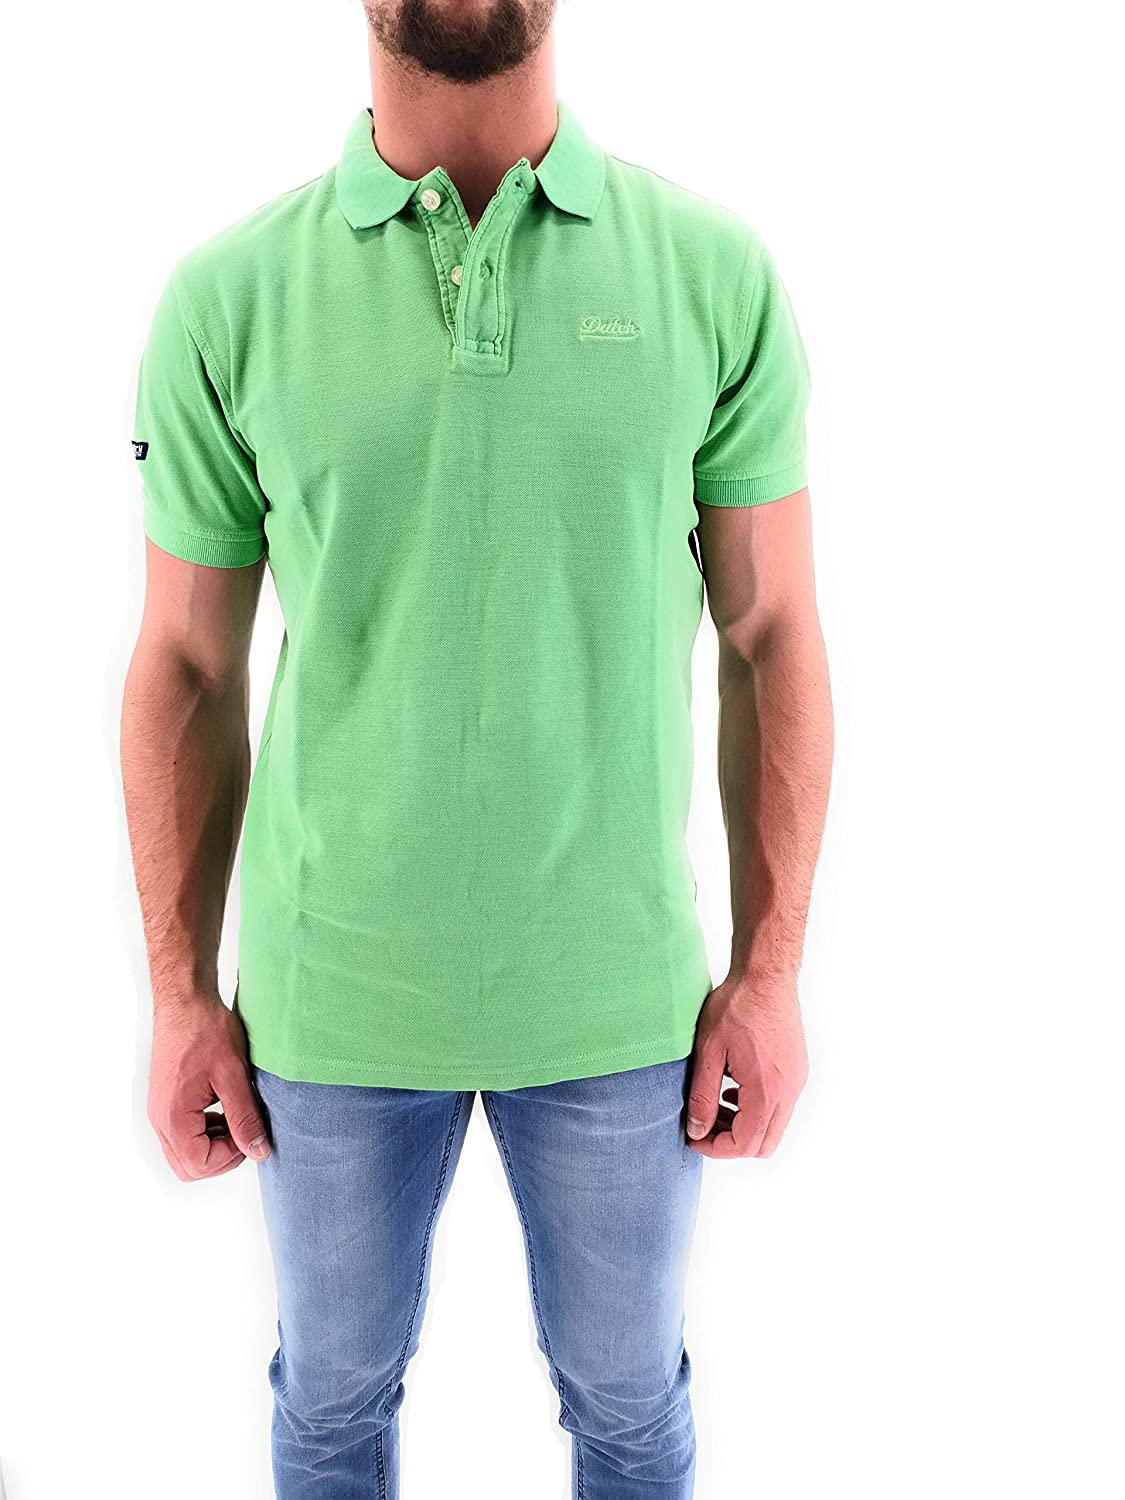 Datch Polo Uomo Manica Corta Basic: Amazon.es: Ropa y accesorios